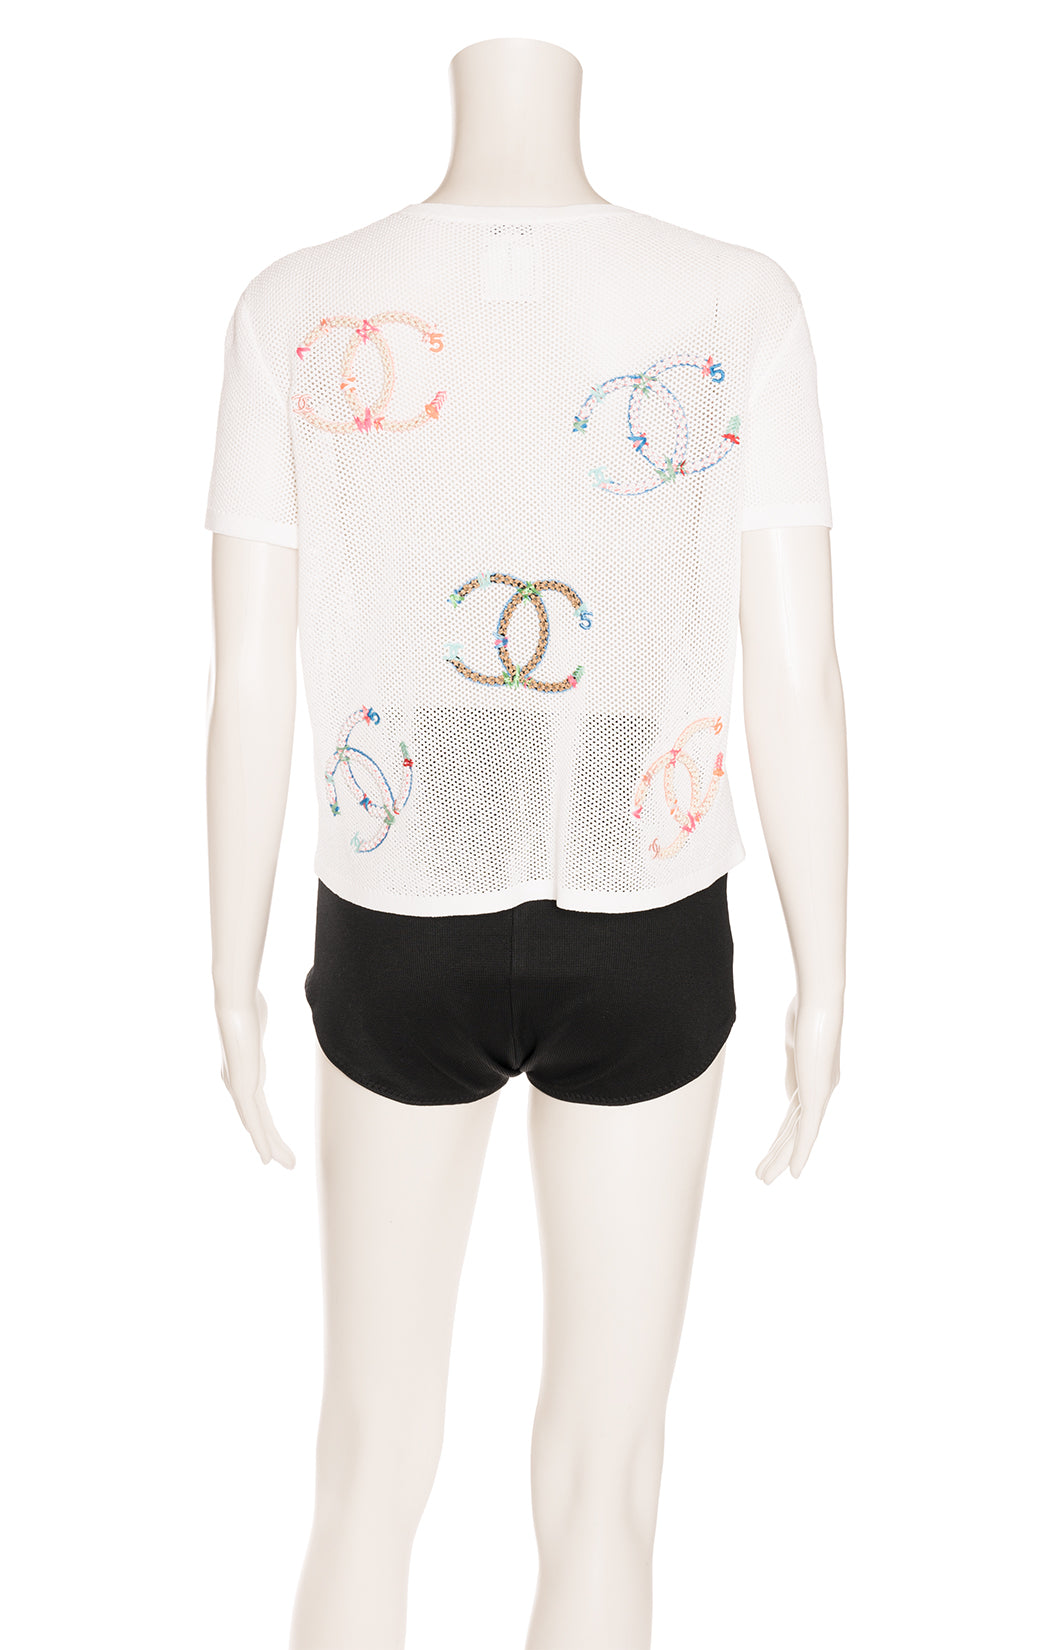 CHANEL Top Size: FR 42 (comparable to US 4-6)